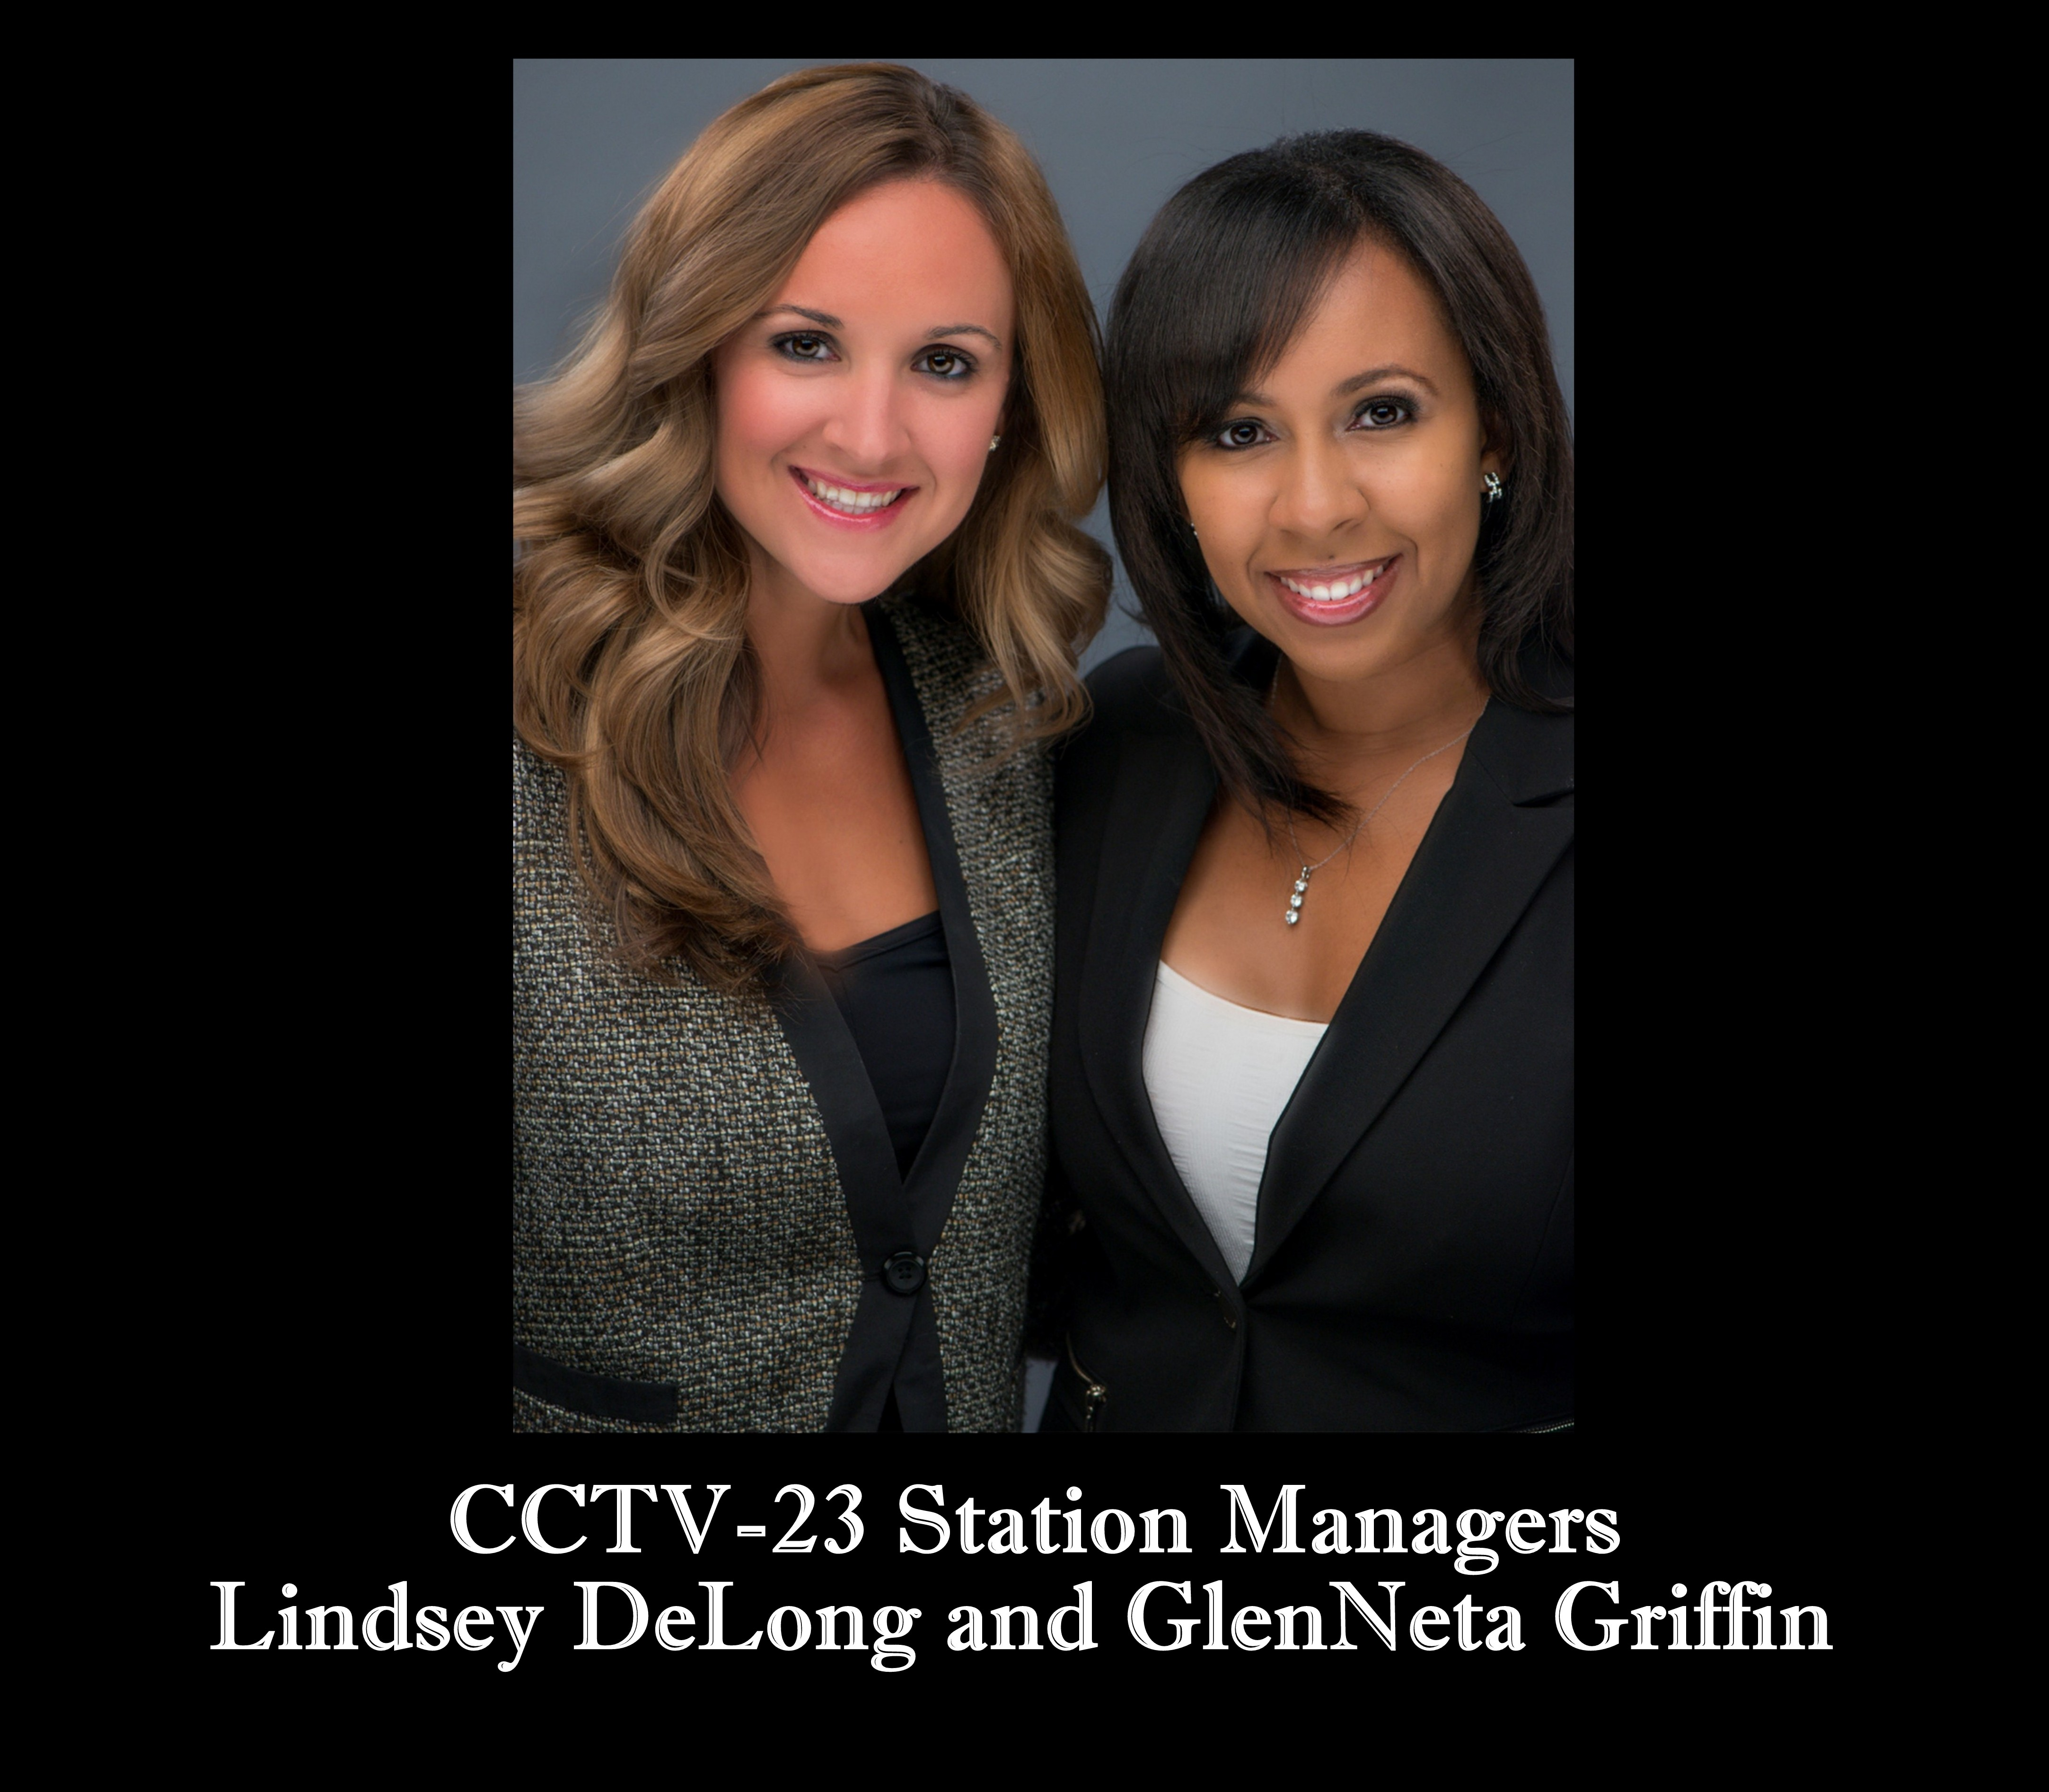 CCTV Station Managers